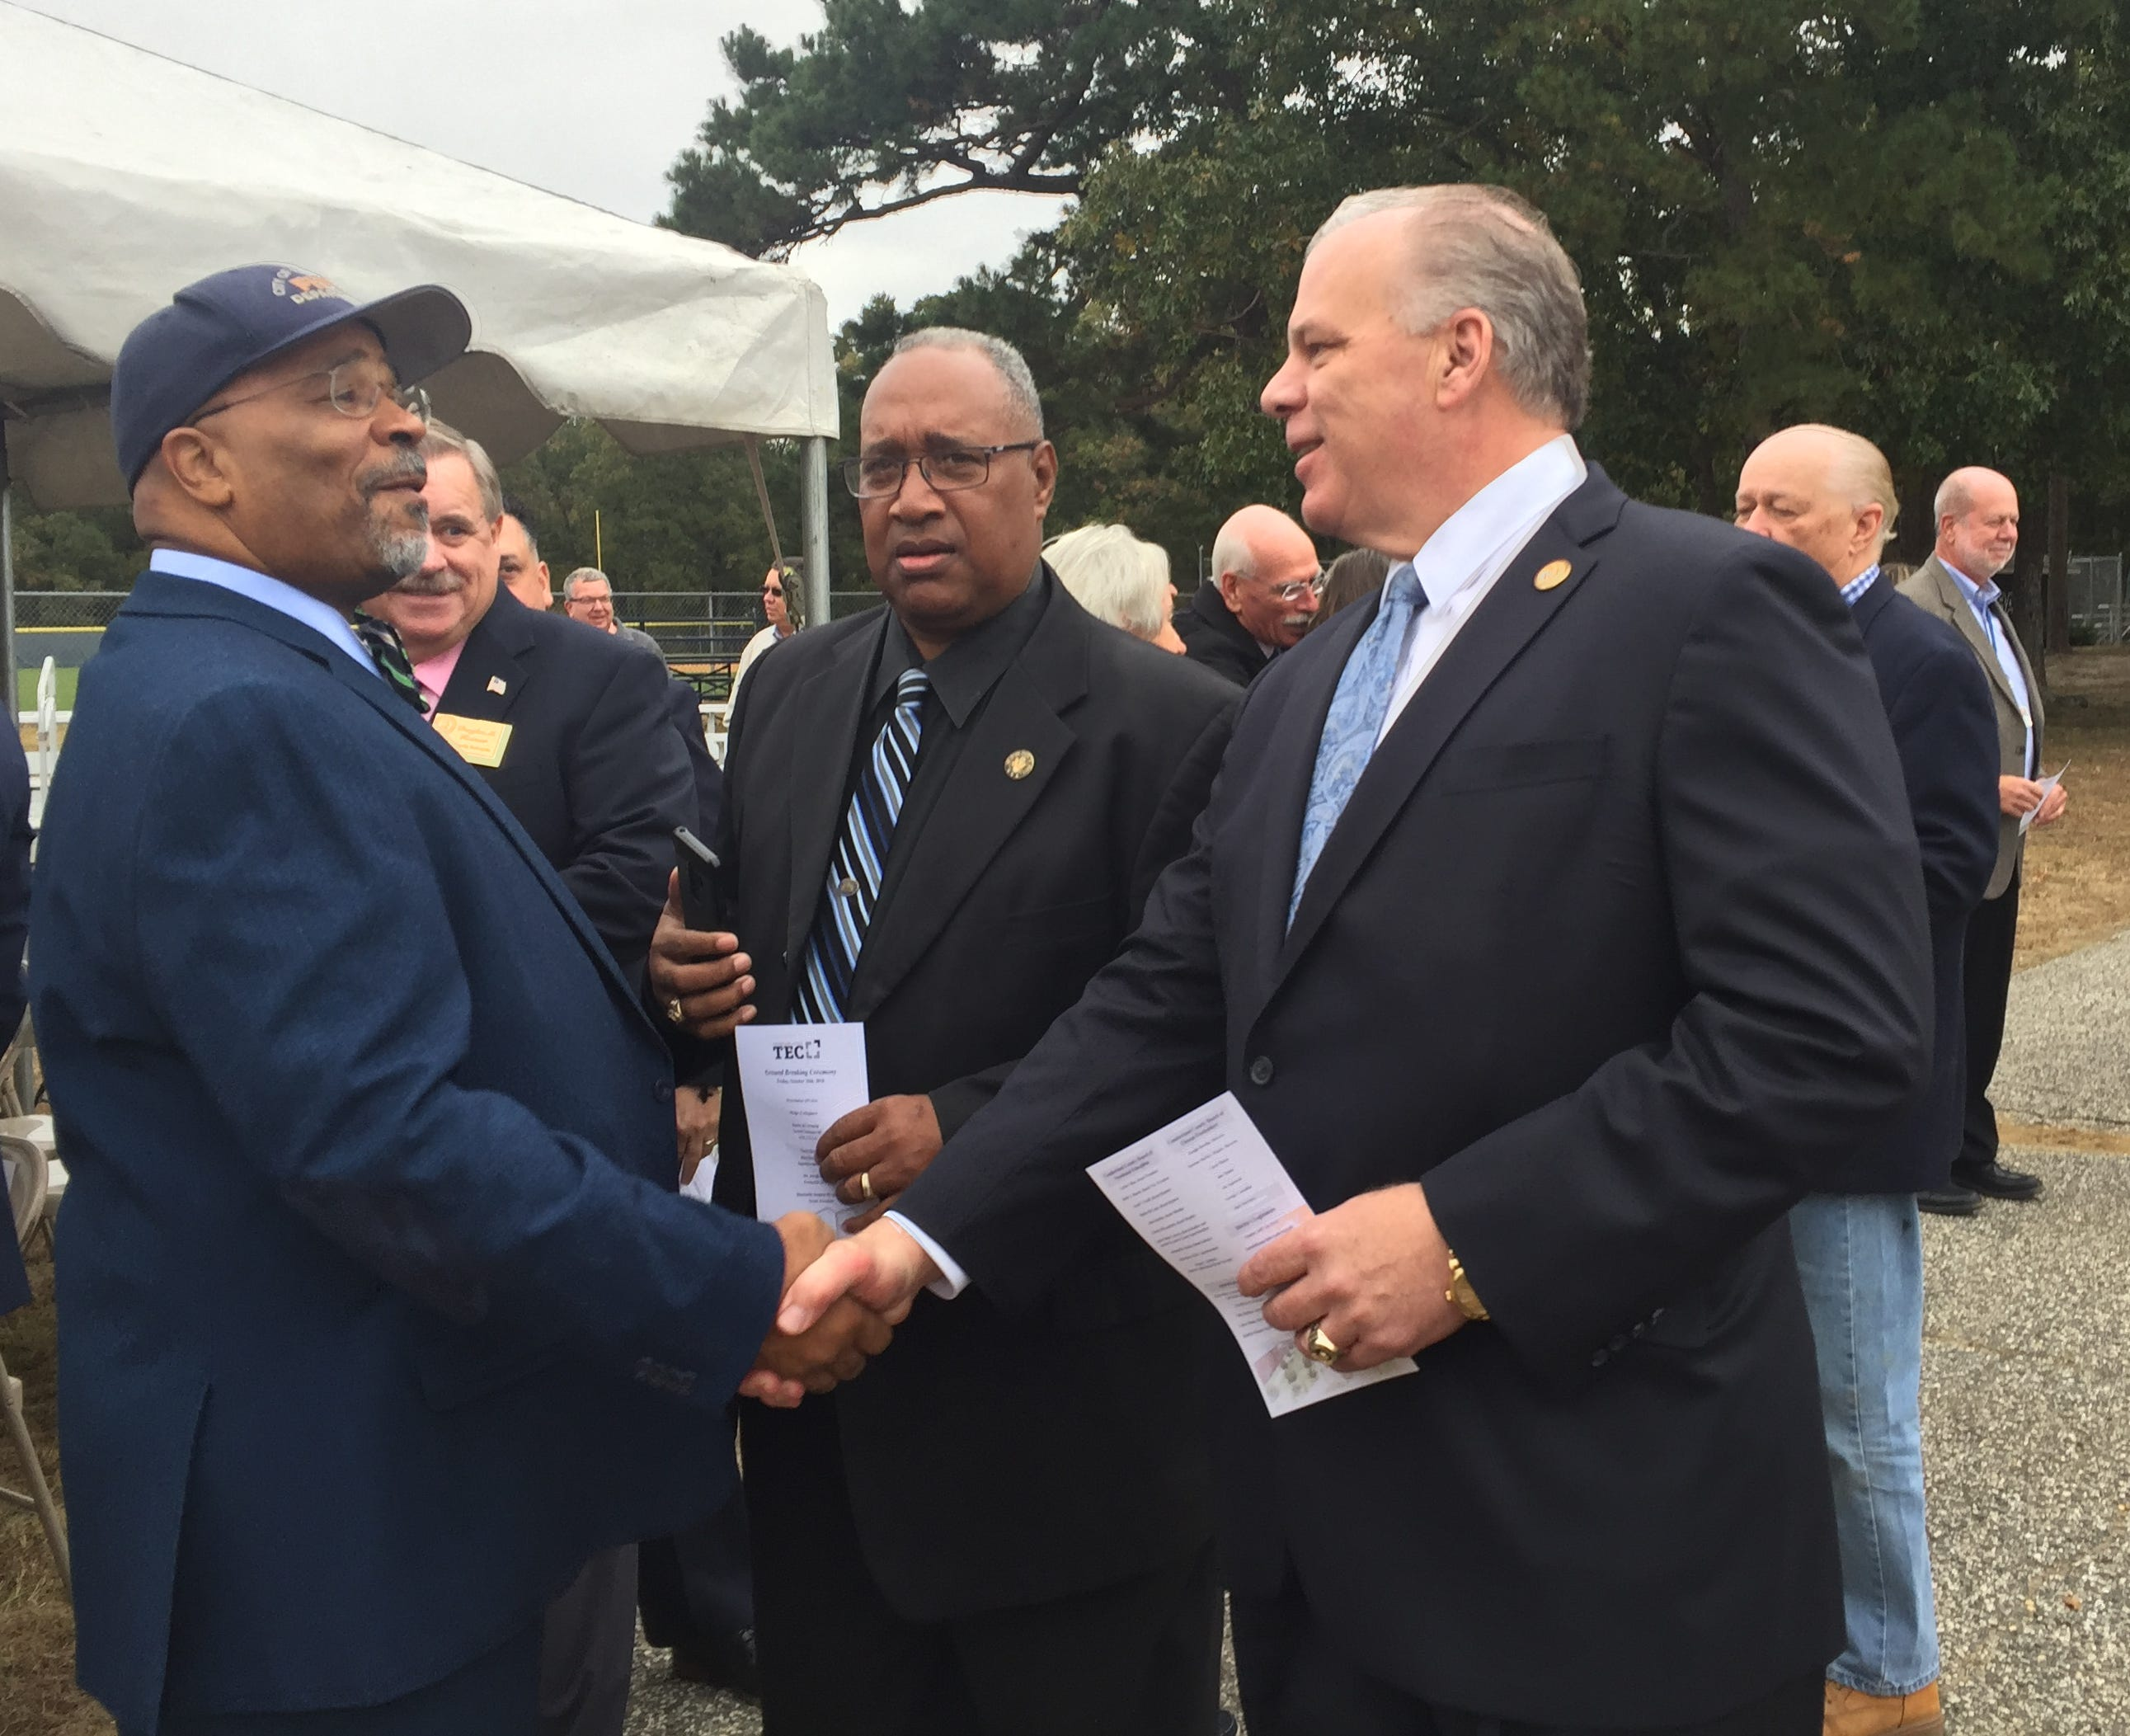 Bridgeton Mayor Albert Kelly (right) greets New Jersey Senate President Stephen M. Sweeney at Friday's ground-breaking ceremony at the John F. Scarpa Technical Education Center on College Drive in Millville. Work starts soon on a Health Science and Medicine building.